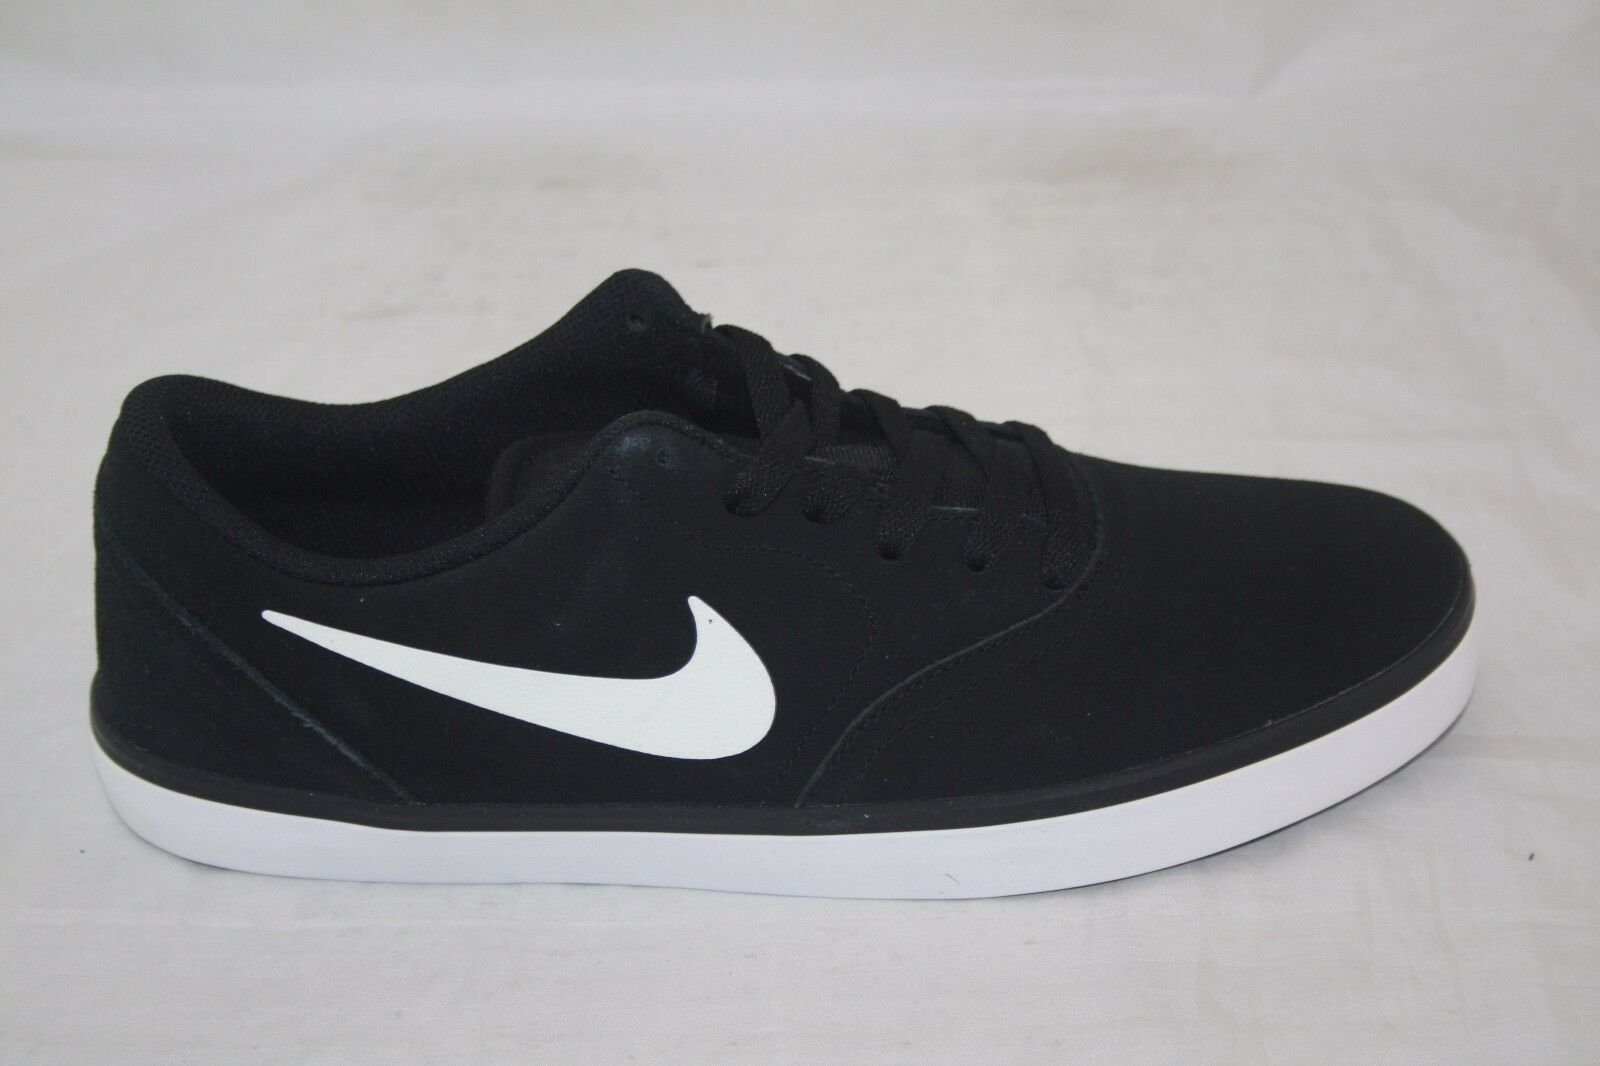 NIKE MEN'S SB CHECK 705265-004 BLACK WHITE SIZE 10.5 MSRP  70.00